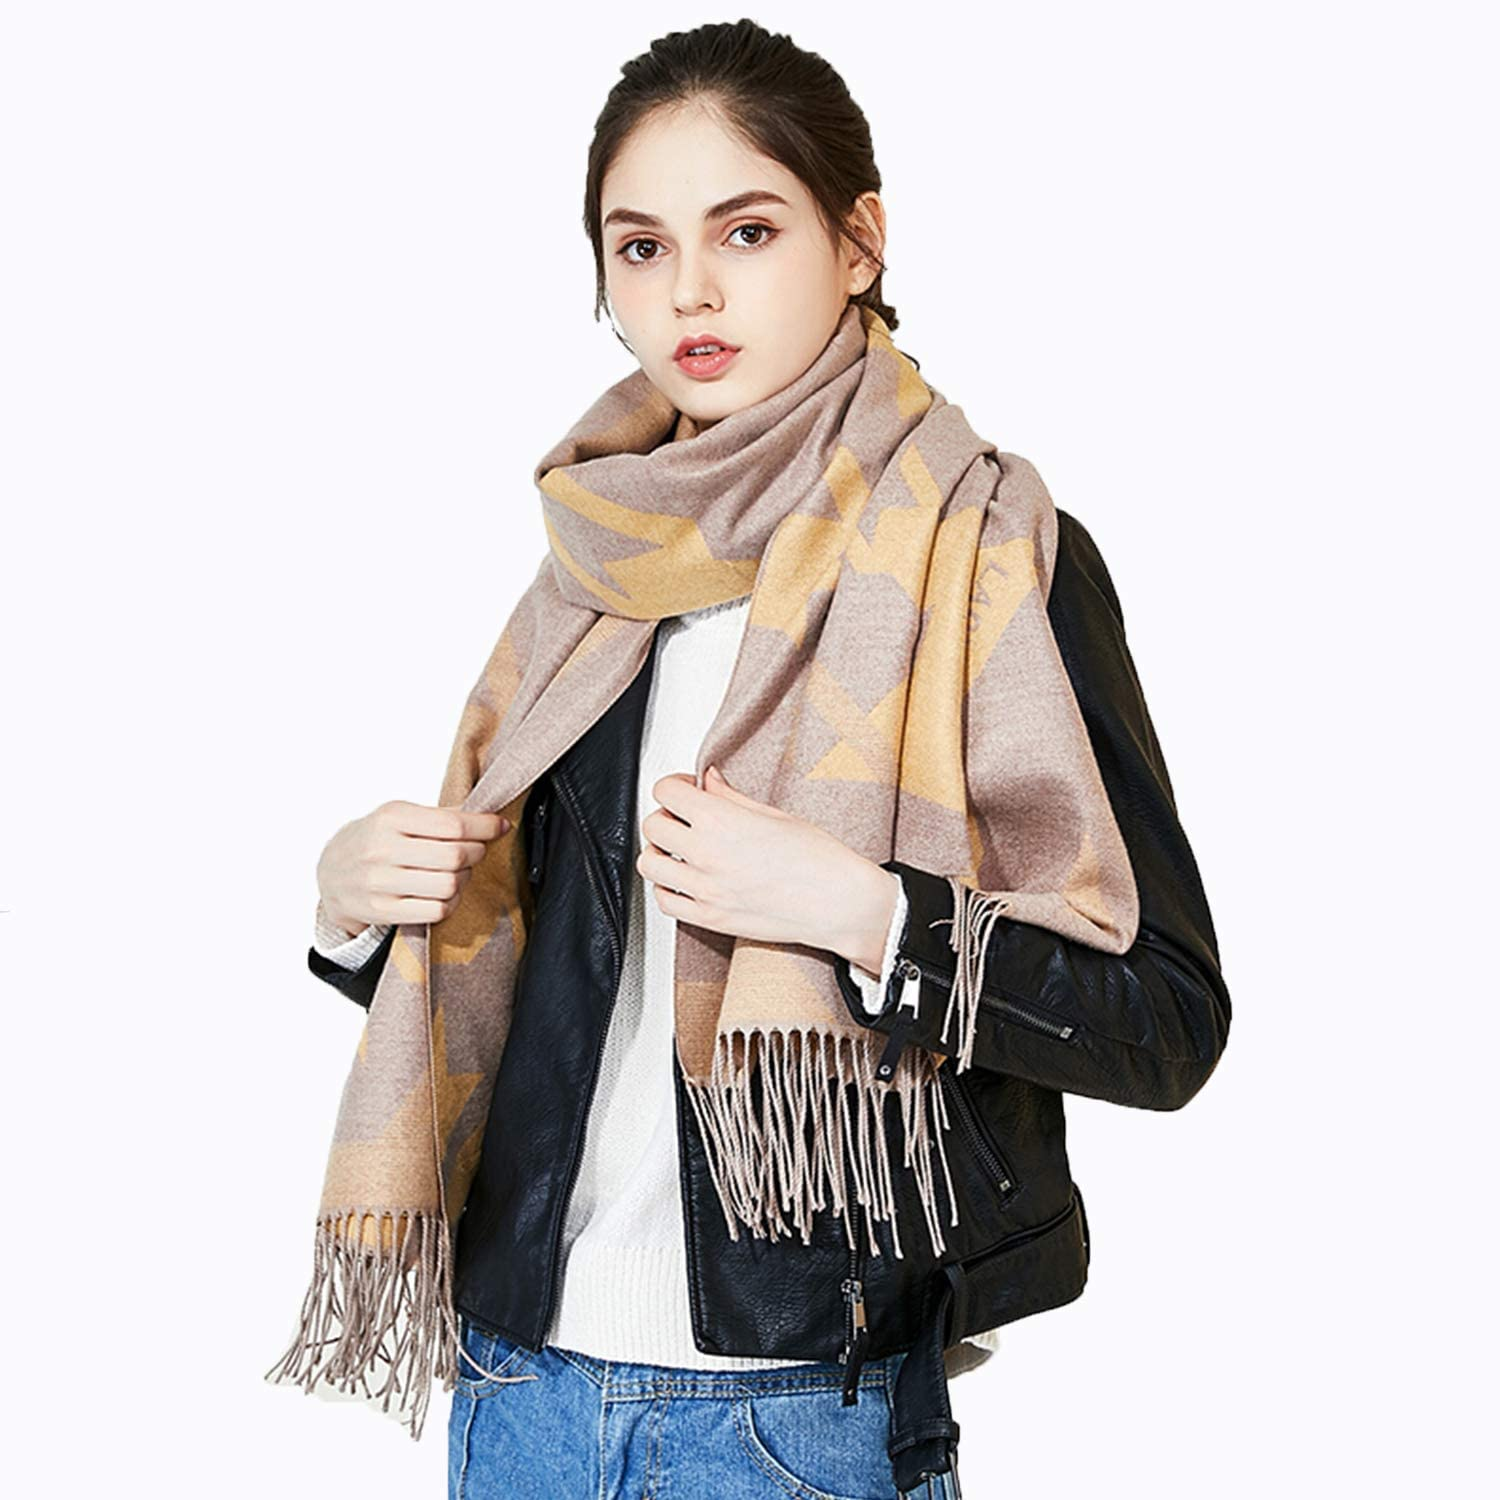 Elegant Warm Women's Scarf Fashion Soft Long Wrap Shawl Ideal for Ladies & Girls Outdoor Activities Use,205 X 65cm